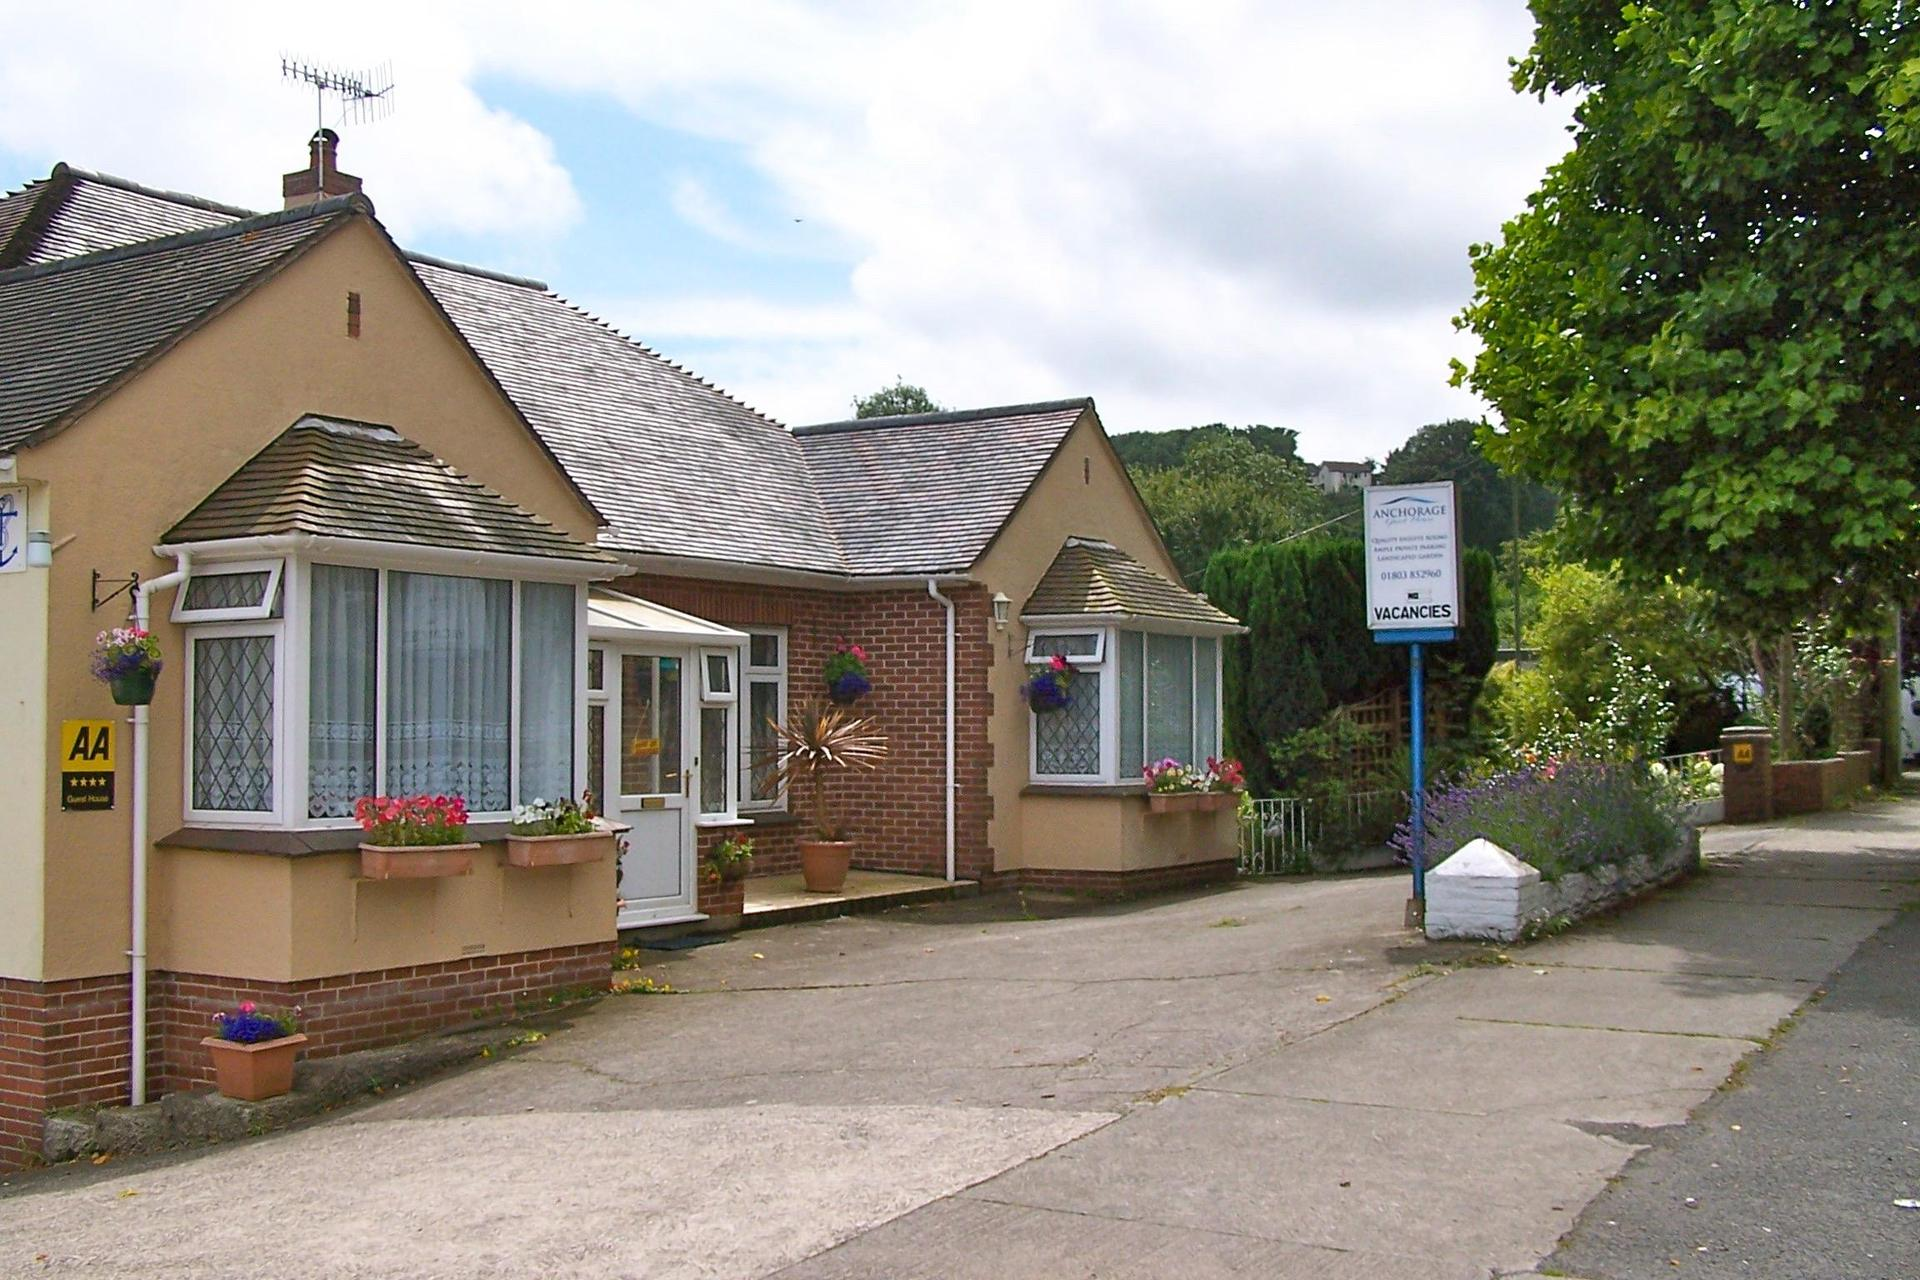 Anchorage Guest House in Paignton